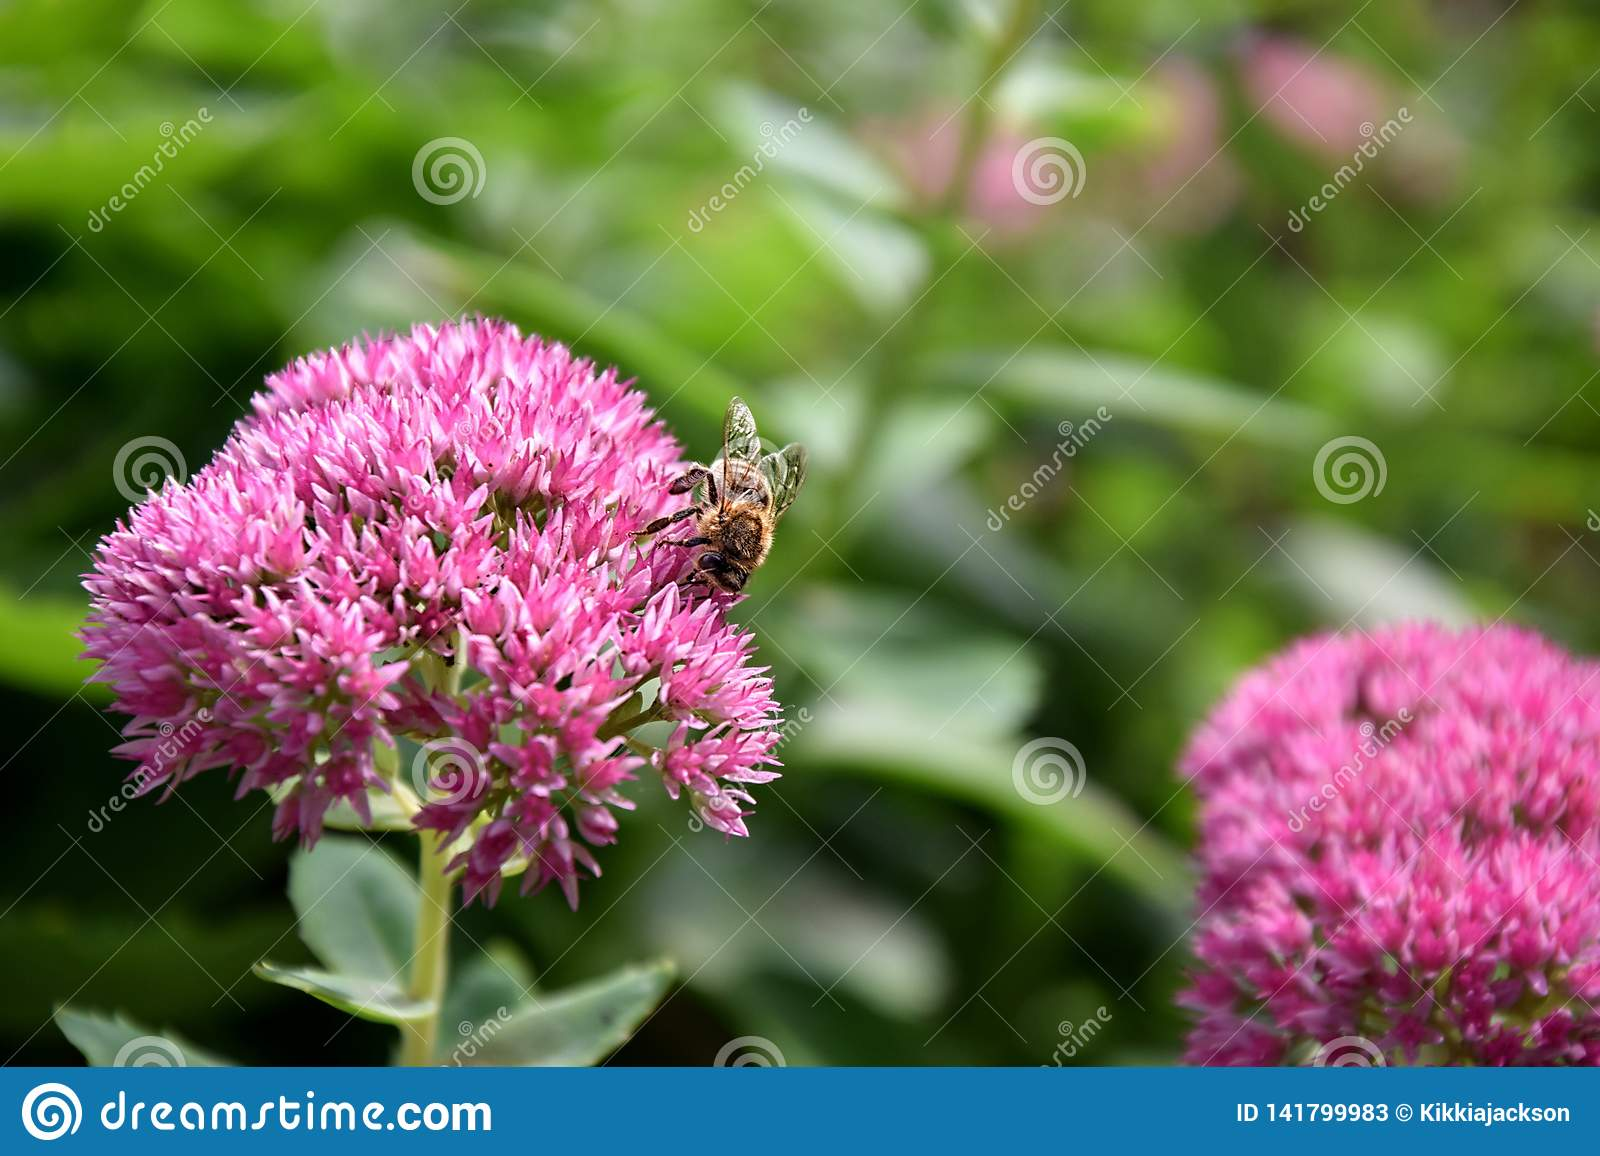 Bee on Pink Flower Summer Closeup Stock Photo